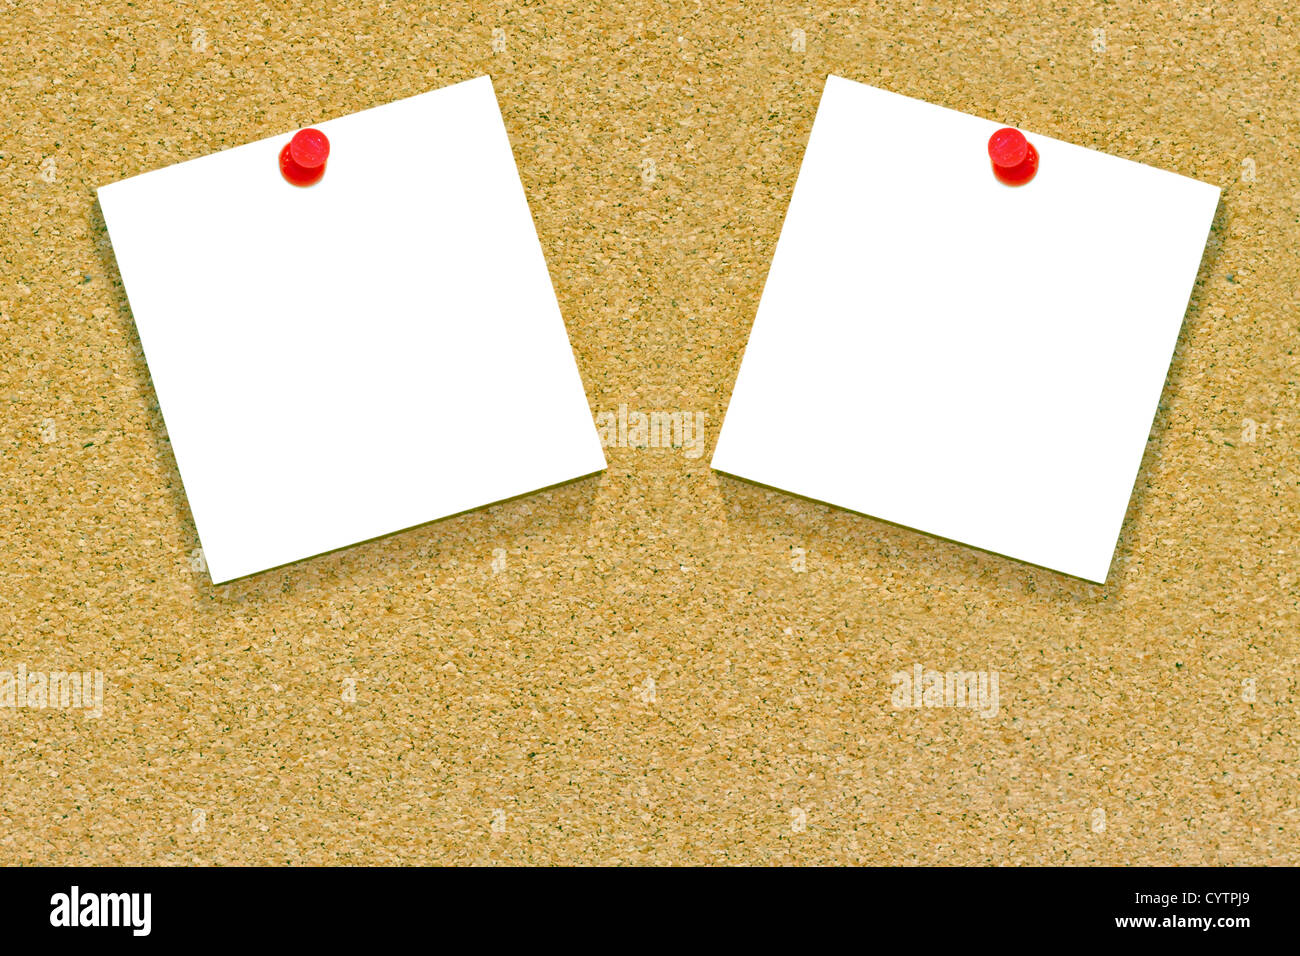 Two blank memo or sticky notes tacked to a cork notice board with copyspace. - Stock Image